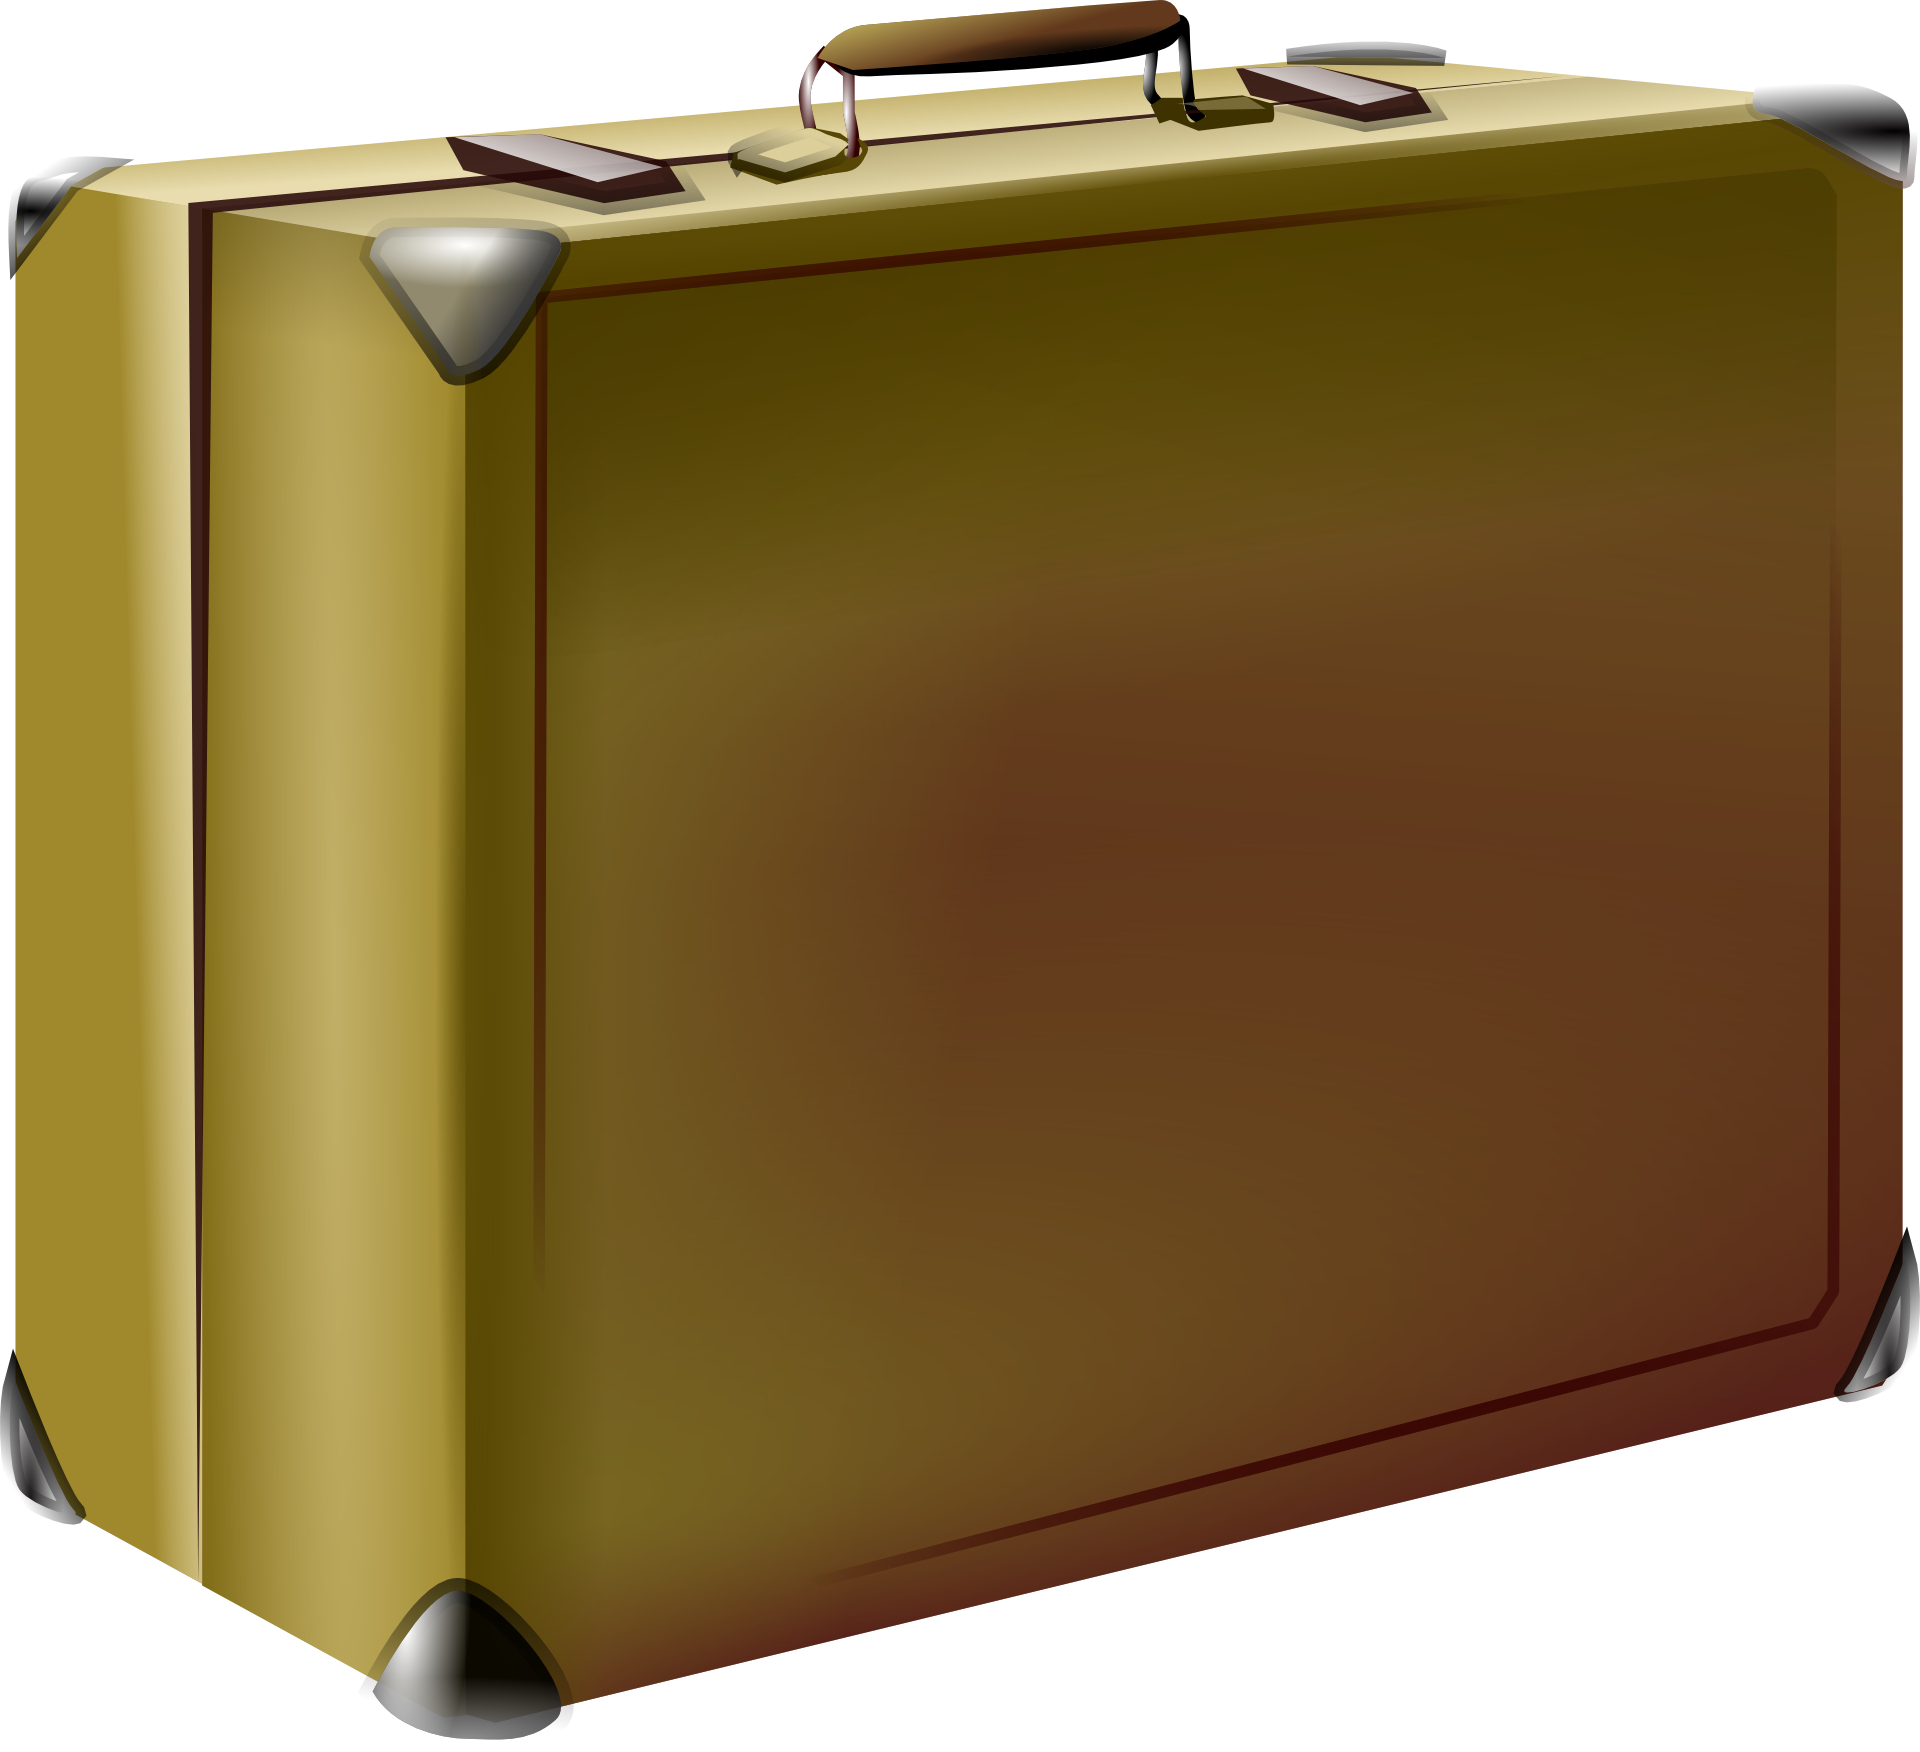 Golden suitcase,luggage vector